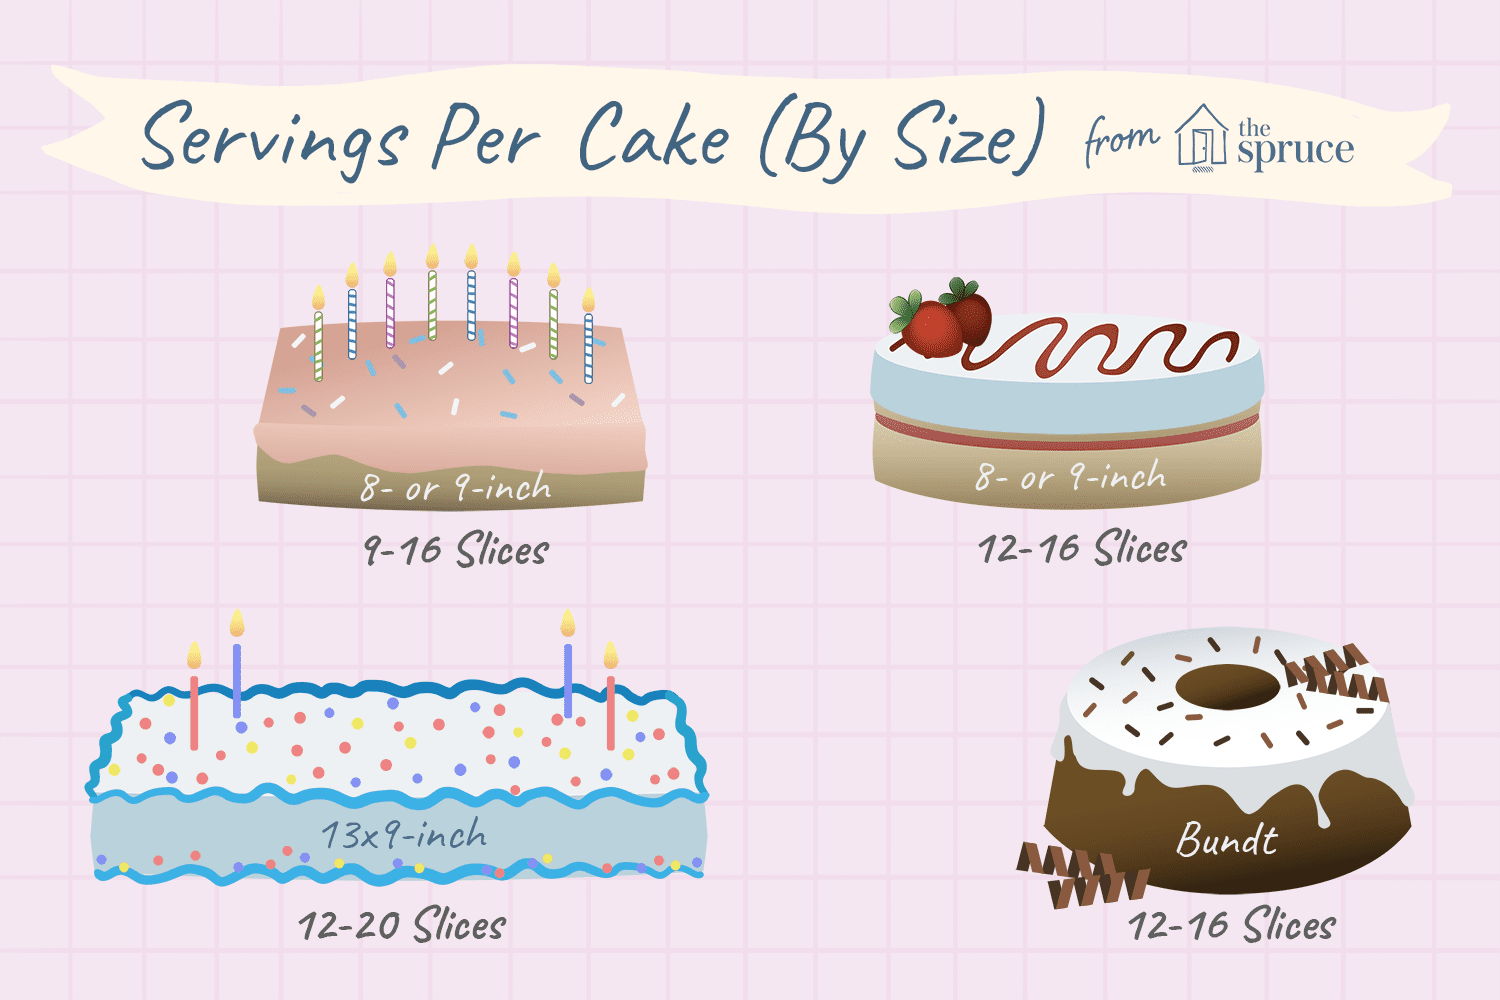 Approximate Servings Slices Per Cake By Size